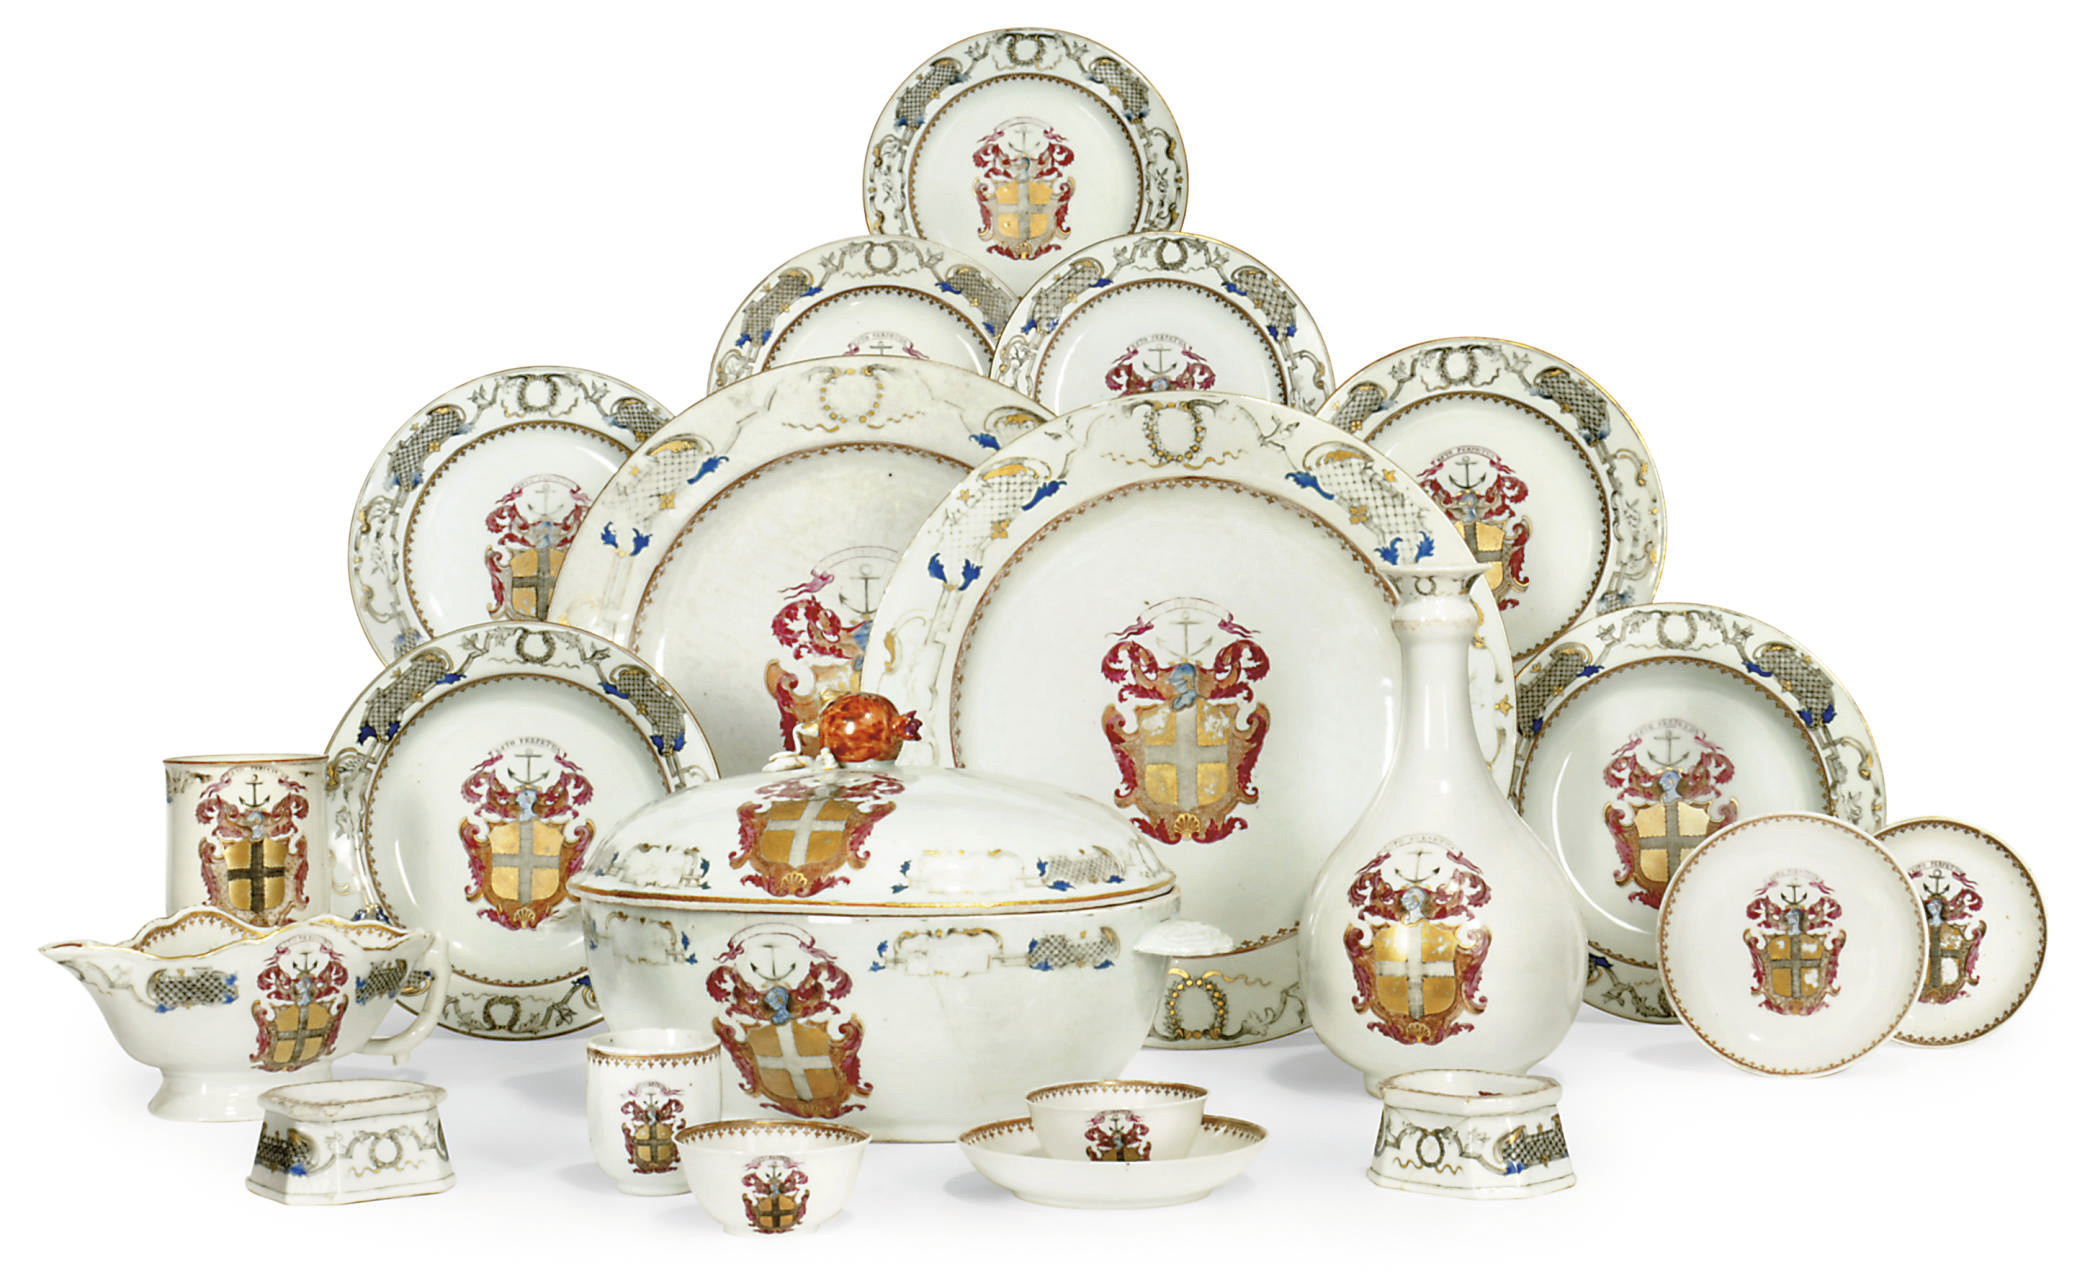 A CHINESE EXPORT ARMORIAL PART DINNER SERVICE